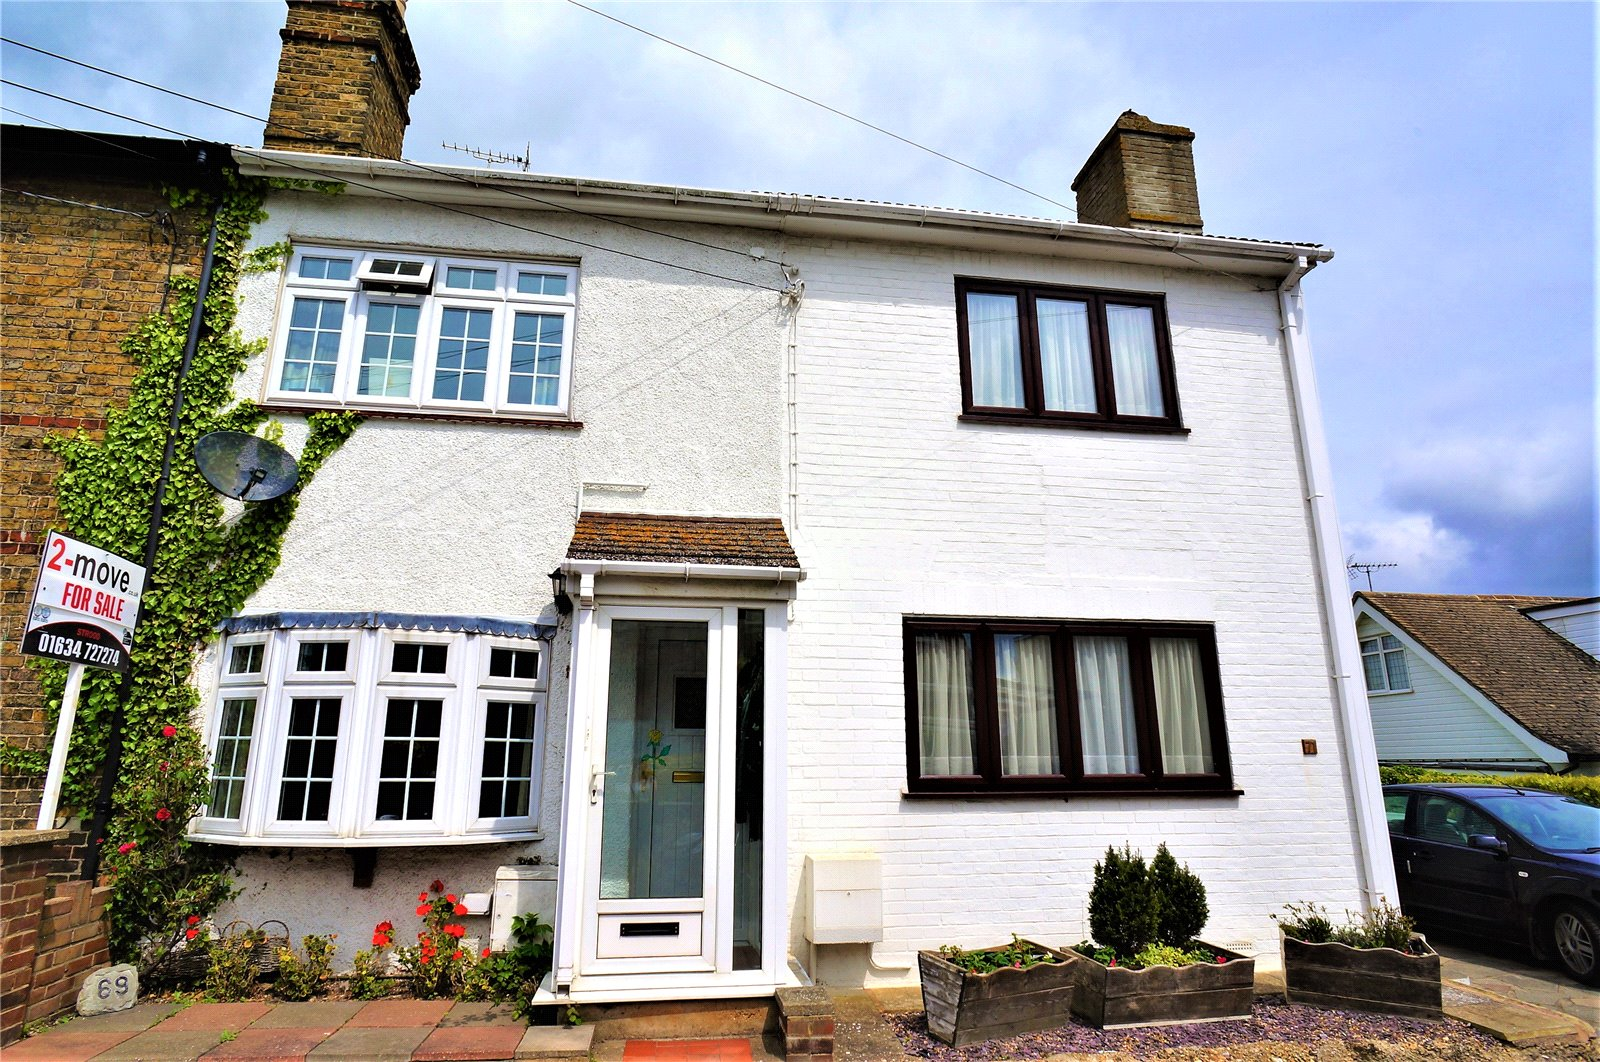 2 Bedrooms Terraced House for sale in Reed Street, Cliffe, Rochester, Kent, ME3